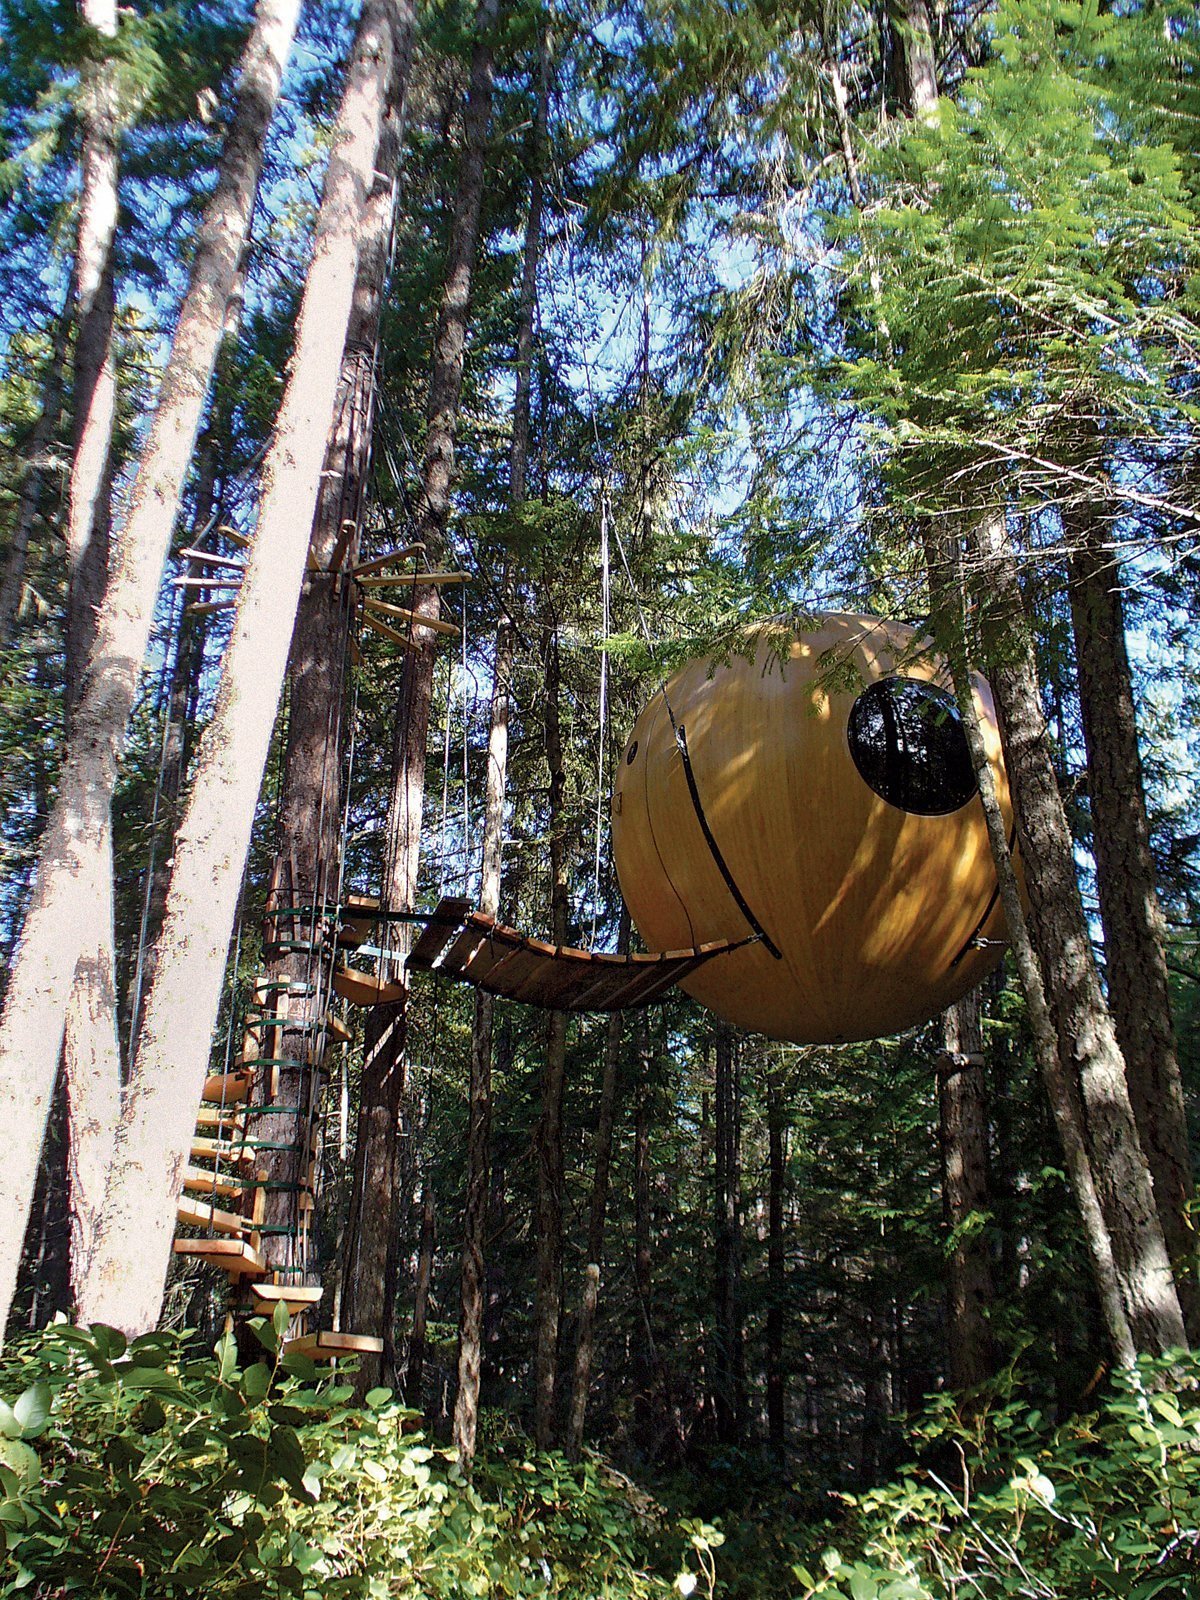 "British Columbia–based Tom Chudleigh designed the Free Spirit Sphere as a have-your-cake-and-eat-it-too tree house that combines the wonder of being airborne with all manner of earthly comforts.  Handcrafted of wood or fiberglass, this lavish ten-foot-six-inch-diameter sphere is fully wired to accommodate a microwave, space heater, refrigerator, TV, Clapper—whatever. And it's plumbed for a kitchen sink. Retractable beds sleep up to four people.   But if the point is to surround one's self with all mod cons, why not just rent a condo in Barstow? ""When you're up in the trees,"" Chudleigh says, somewhat evasively, ""you really get the sense that you are just floating up there, that you're in a different world."" This sensation is produced by four flexible ropes that connect to the sides of the sphere, allowing it to suspend freely above the ground and move with the whim of the forest breeze or branches, intimately connecting the Free Spirit Sphere occupant with the surroundings. ""It's a really healing place up here.""   Chudleigh has built four spheres so far and is on his way to Australia to build four more. Prices range from $45,000 for the fiberglass to $150,000 for the handcrafted wood sphere. ""You think of conventional buildings as having walls, straight lines, color patterns,"" says Chudleigh. ""In these spheres you are completely removed from that: All walls are merged into one, you are in the air, connected to it, detached from everything familiar—it's a total escape from the conventional world.""  br>  br>  Photograph by Gregor MacLean.  Photo 10 of 25 in Photo Essay: Enchanting Tree Houses from The High Life"